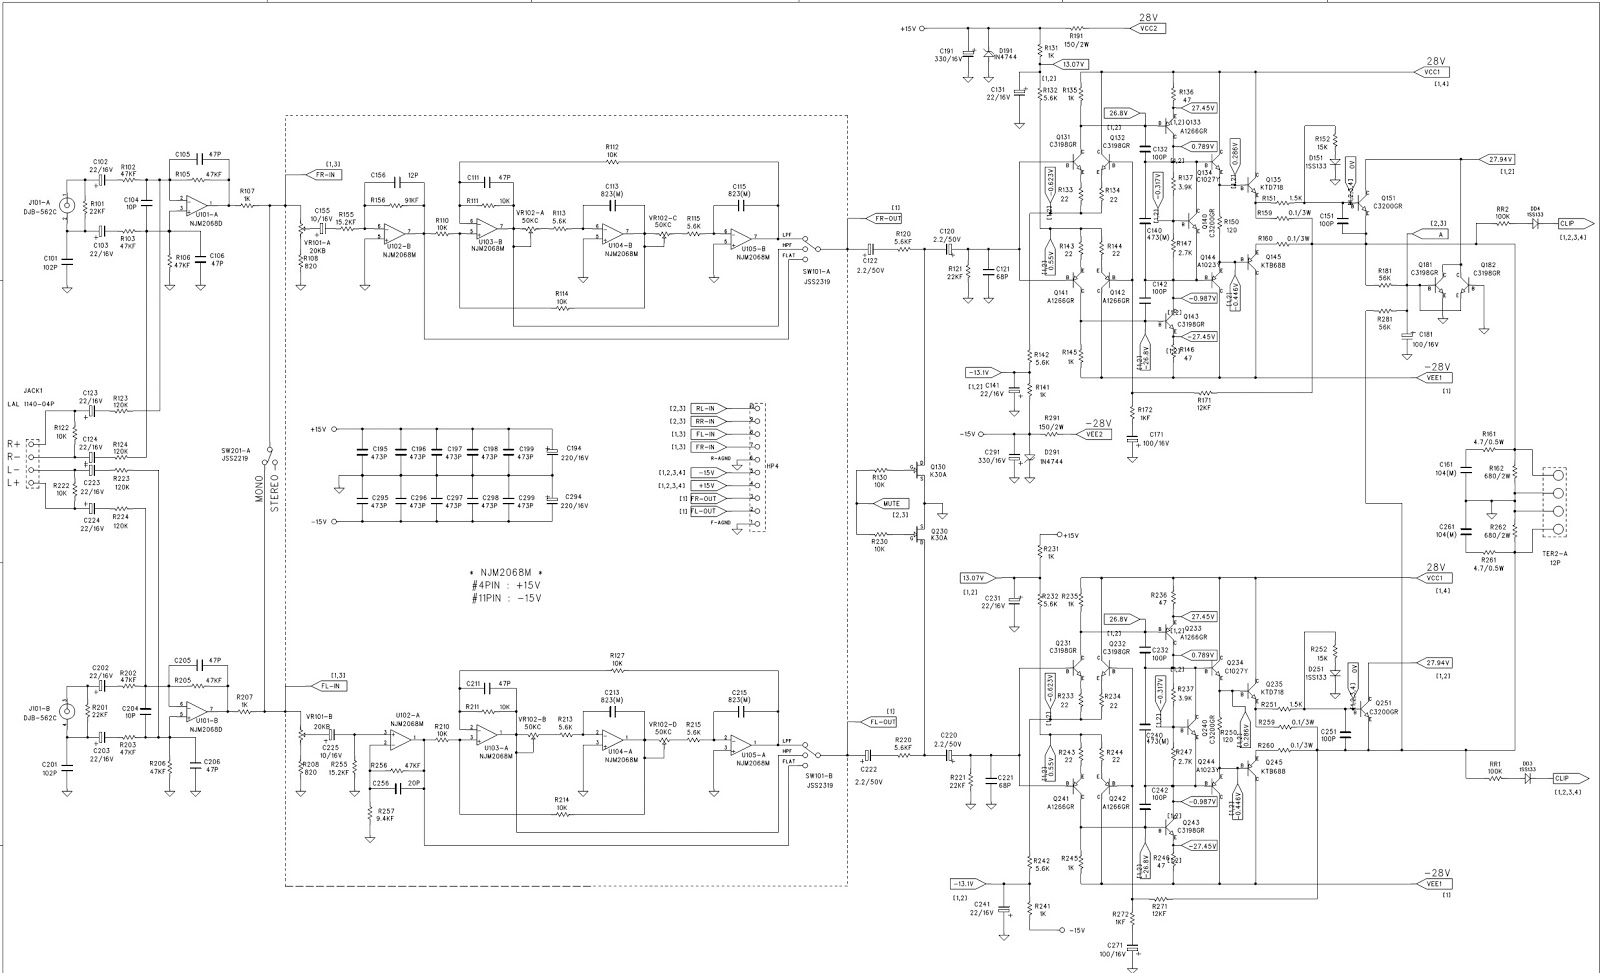 infinity 5760a wiring diagram – circuit diagram - 6 ... infinity amplifier wiring diagram 2001 dodge infinity radio wiring diagram